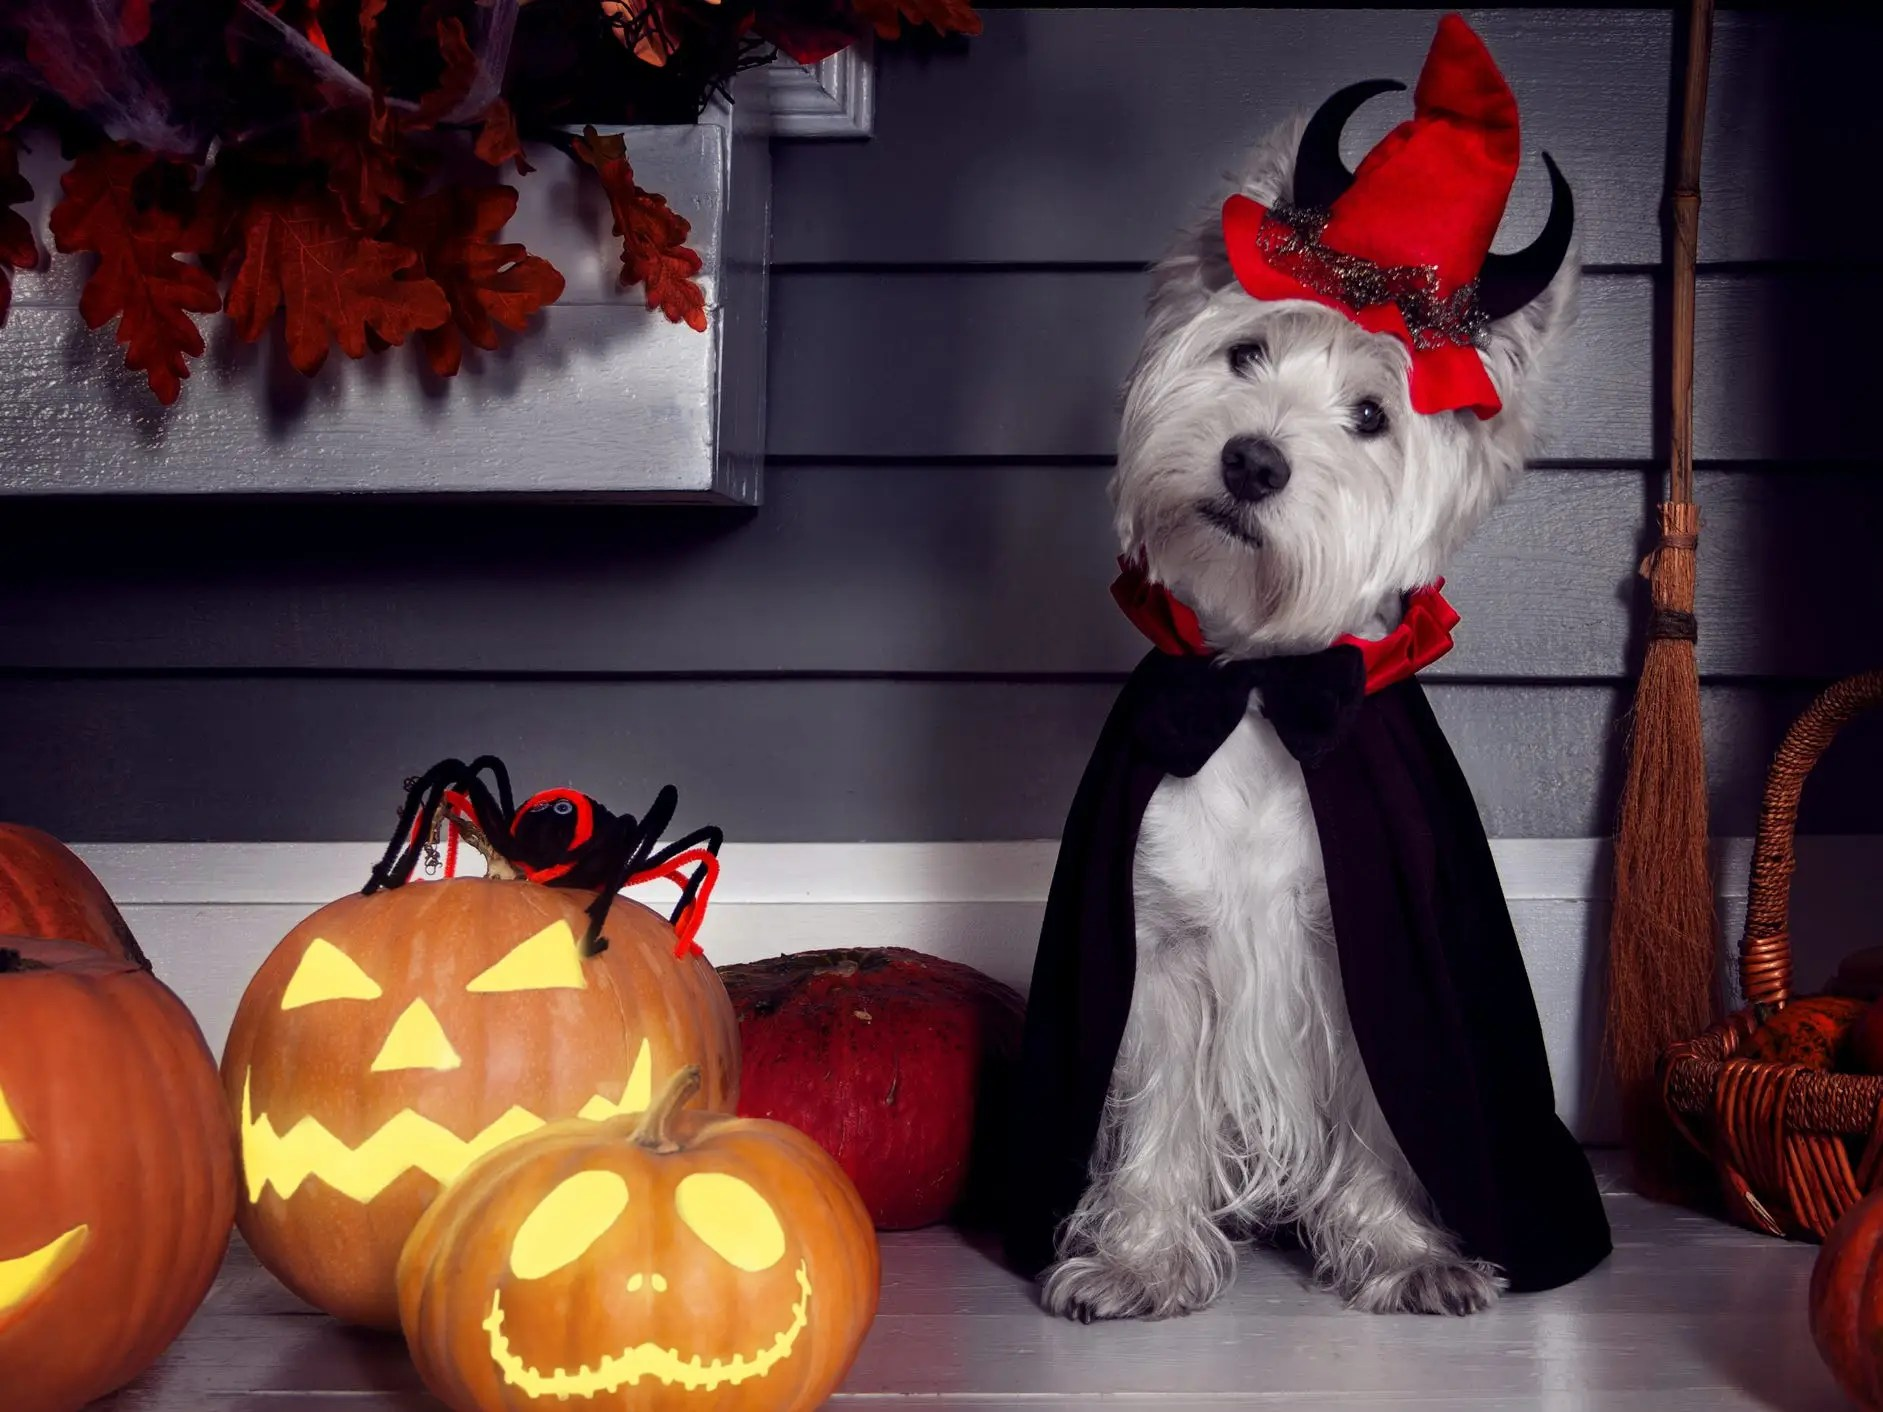 Whether halloween has sneaked up on you this year or you've been planning how to dress up your pet since last halloween, these adorable pet halloween costumes add so much fun to the spooky season. 15 Cat And Dog Costumes For Halloween